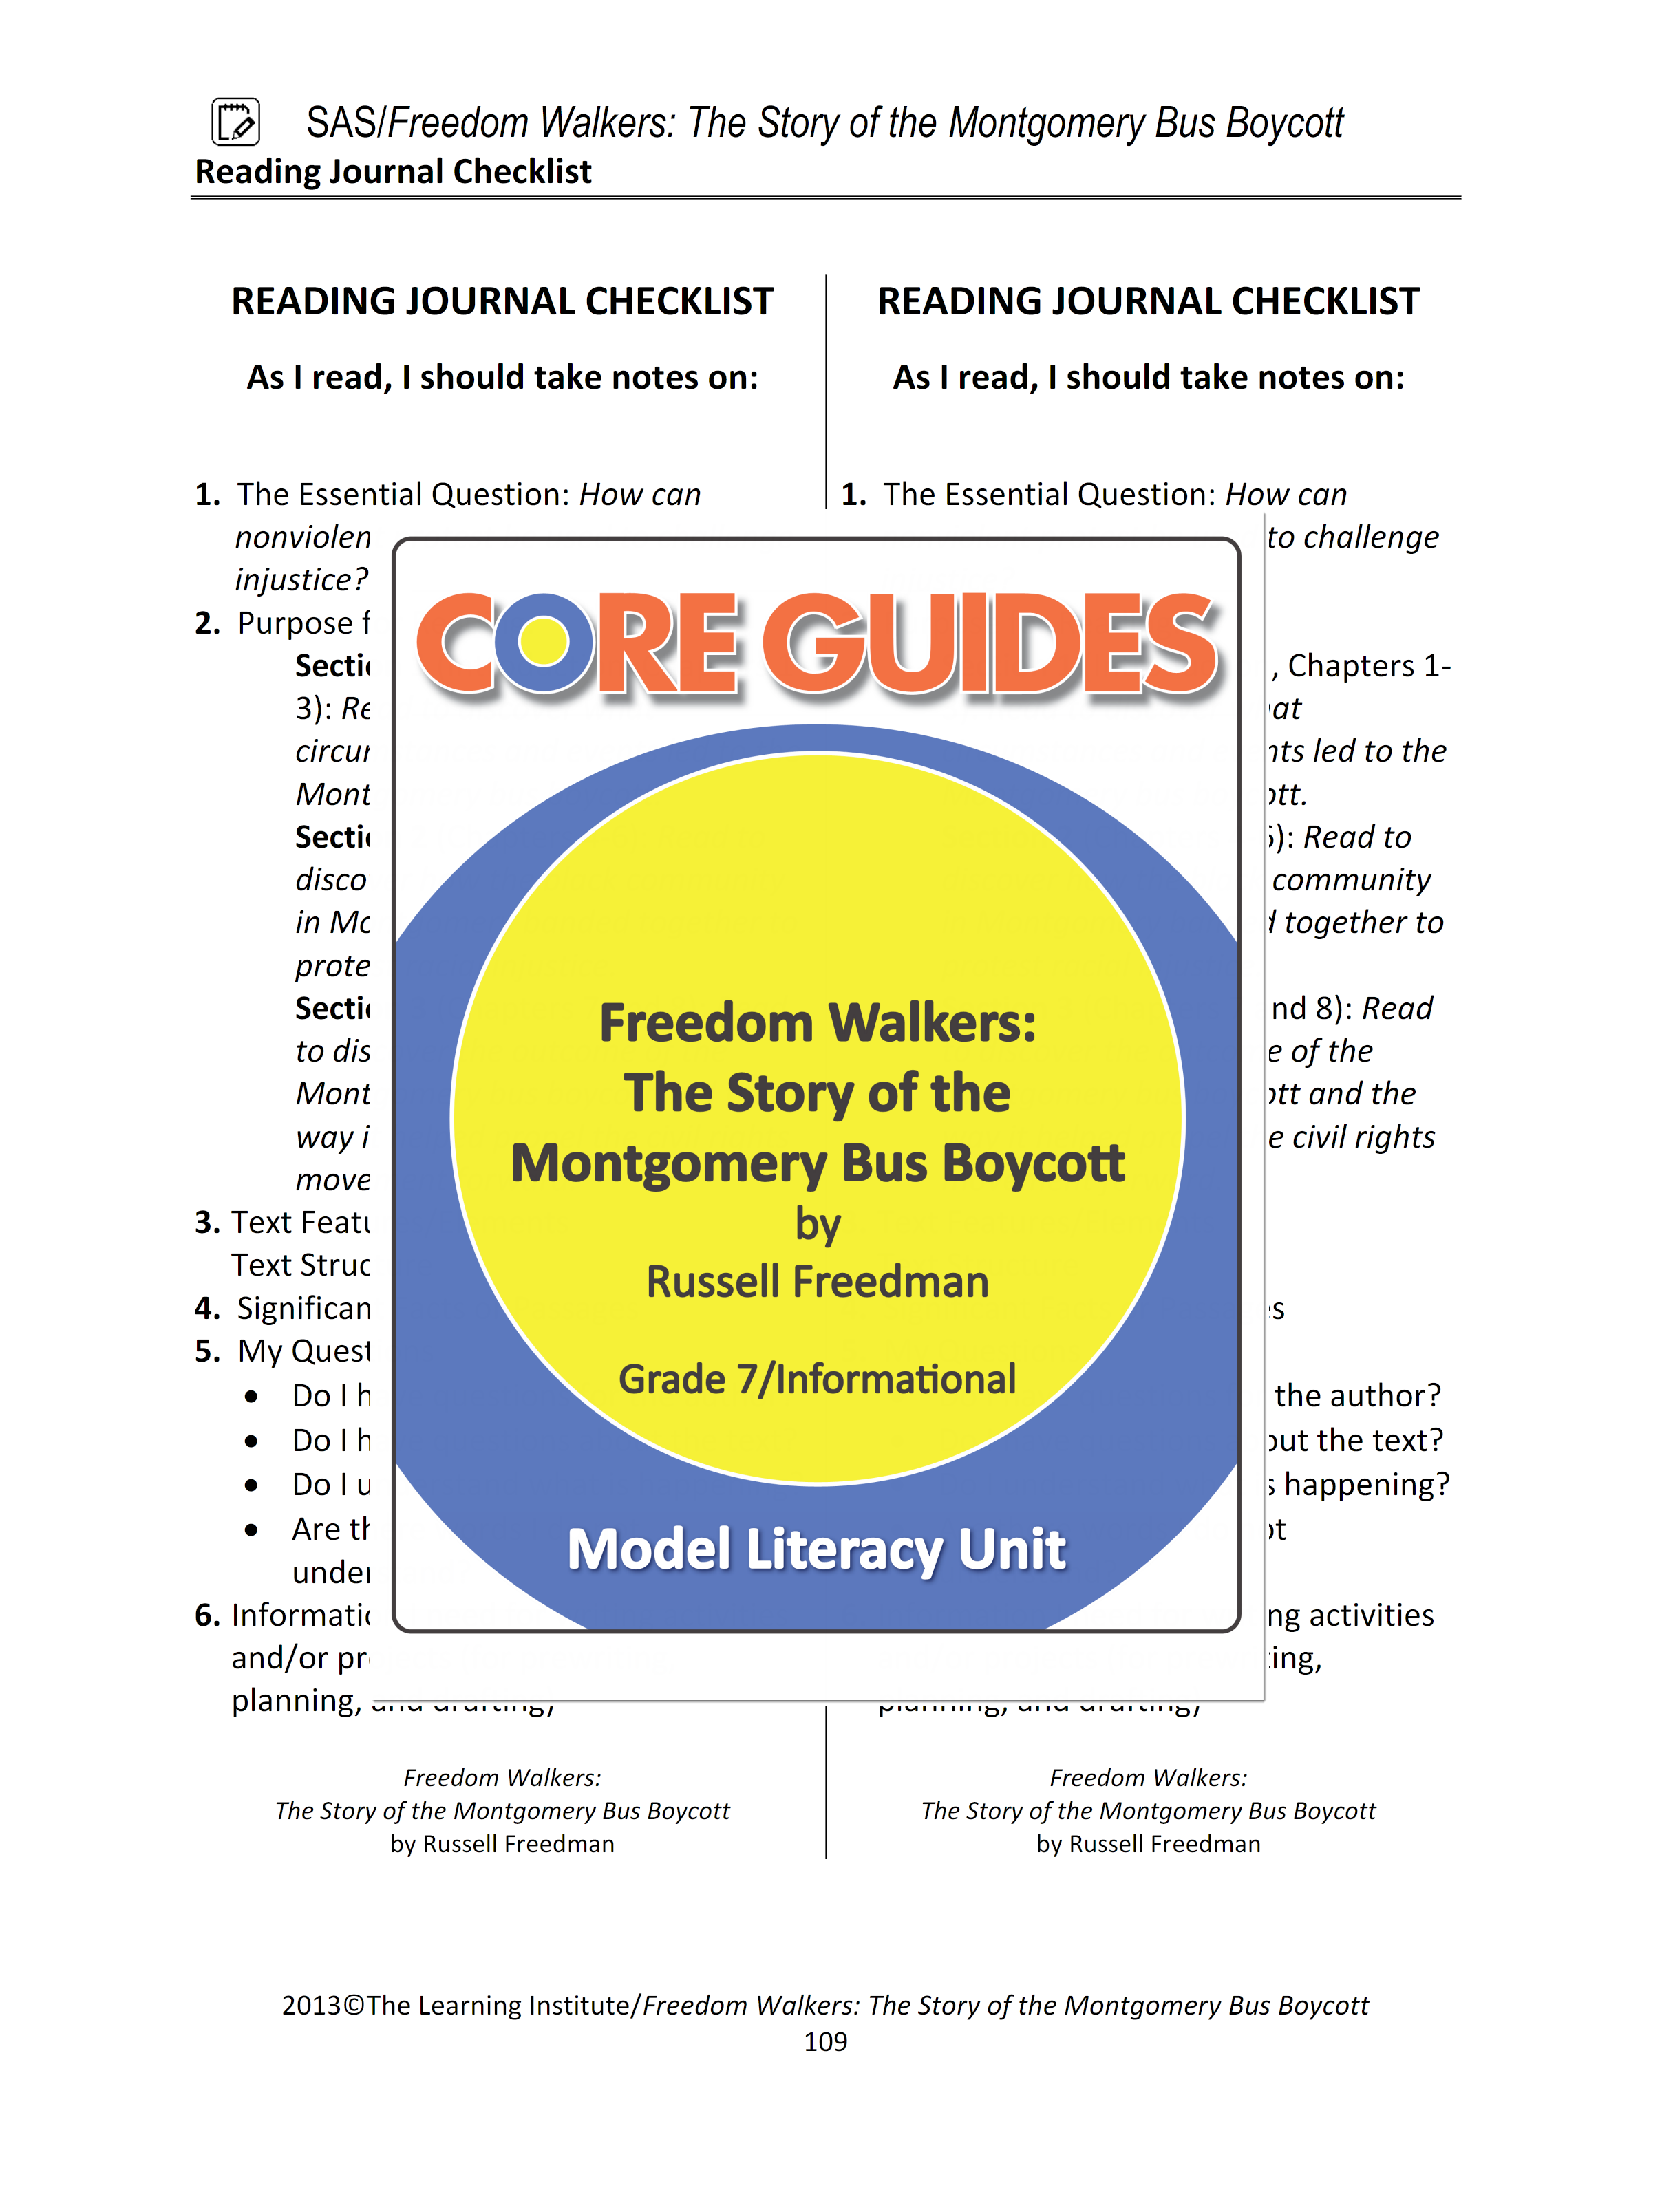 Download This Free Pdf Of Our Reading Journal Checklist For Use With  Download This Free Pdf Of Our Reading Journal Checklist For Use With  Freedom Walkers The Story Of The Montgomery Bus Boycott This Checklist  Can Also Be